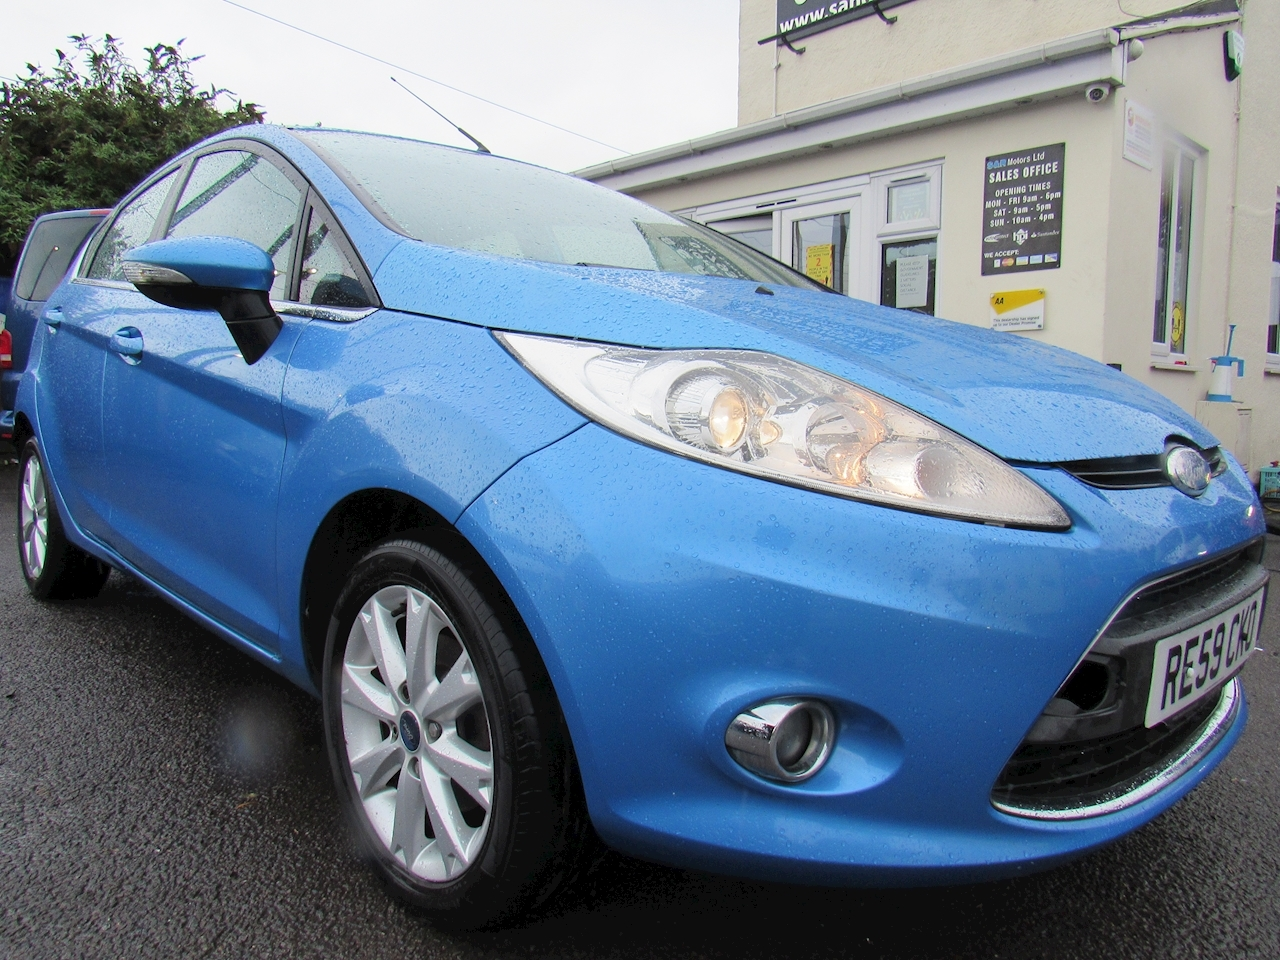 Ford Fiesta Zetec Hatchback 1.3 Manual Petrol